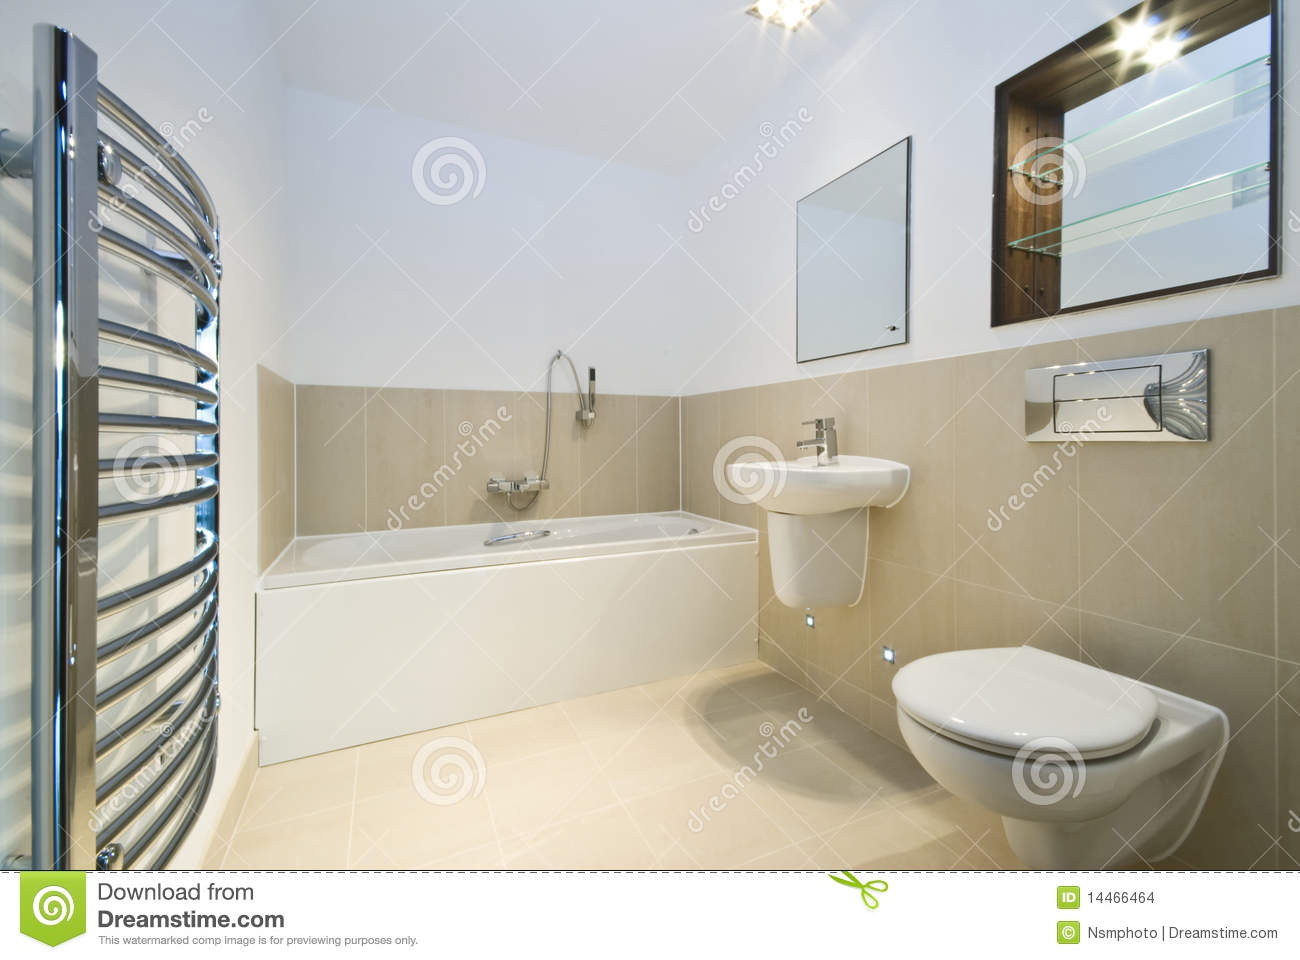 modern bathroom with beige tiled walls stock images - image: 14466464, Hause deko